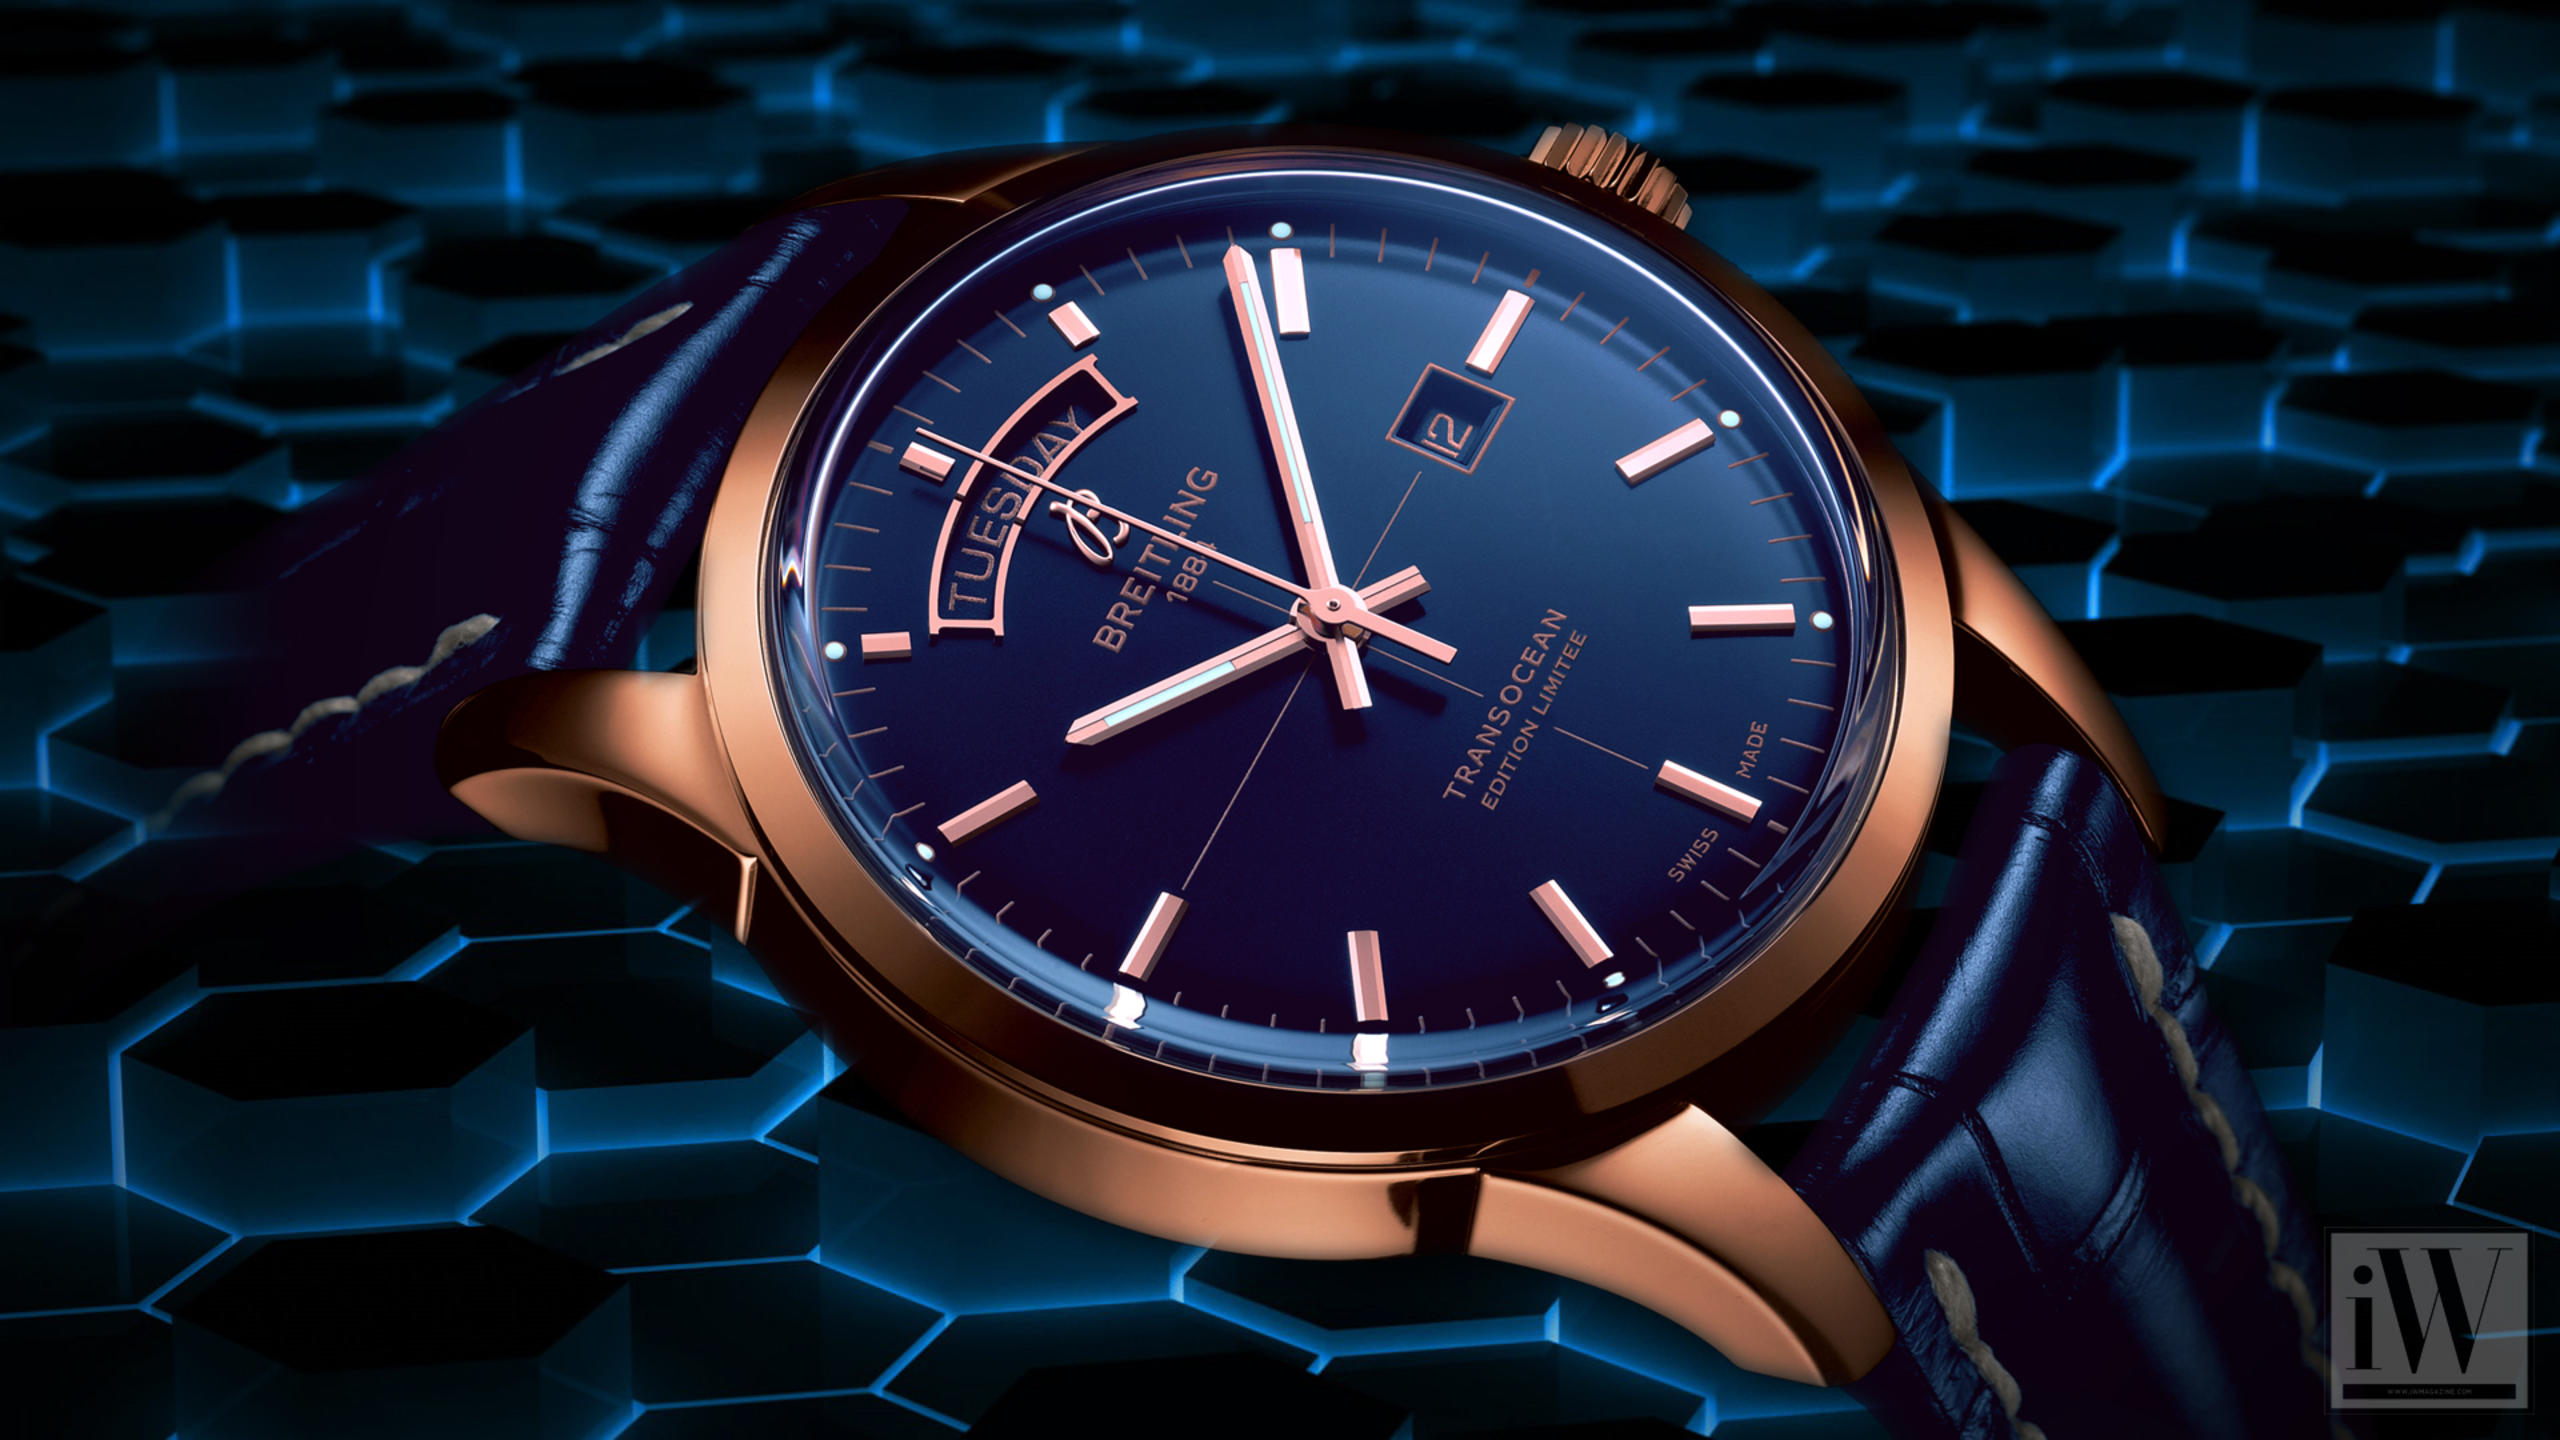 Breitling Transocean Day & Date U.S. Limited Edition